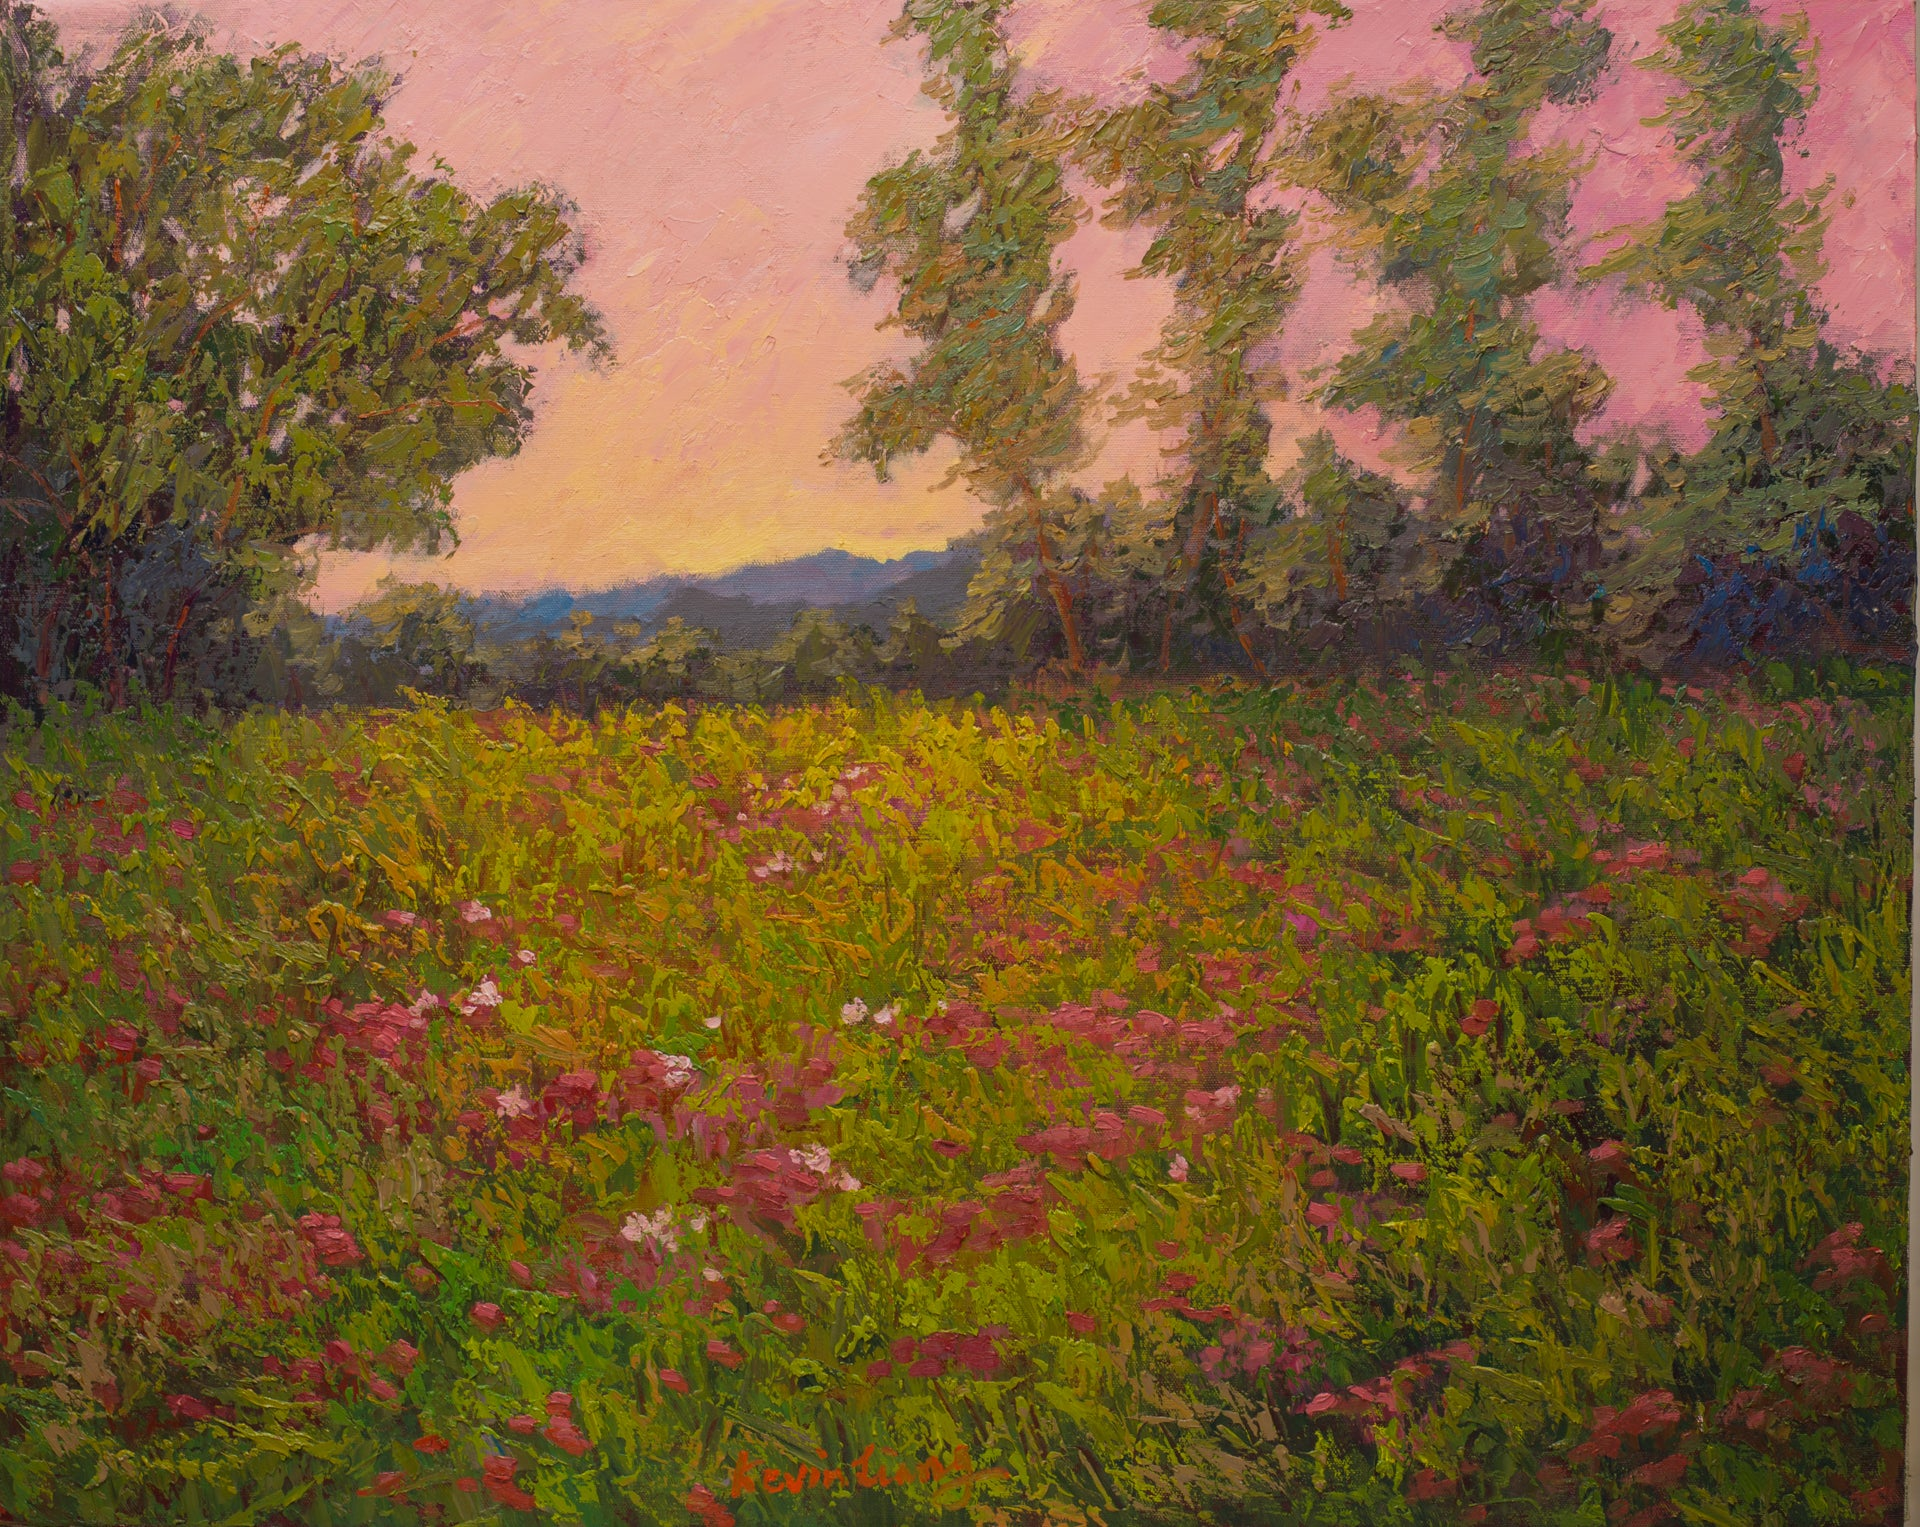 """Wildflowers""   Kevin Liang  2019  Original oil on canvas with frame 26"" x 32"""